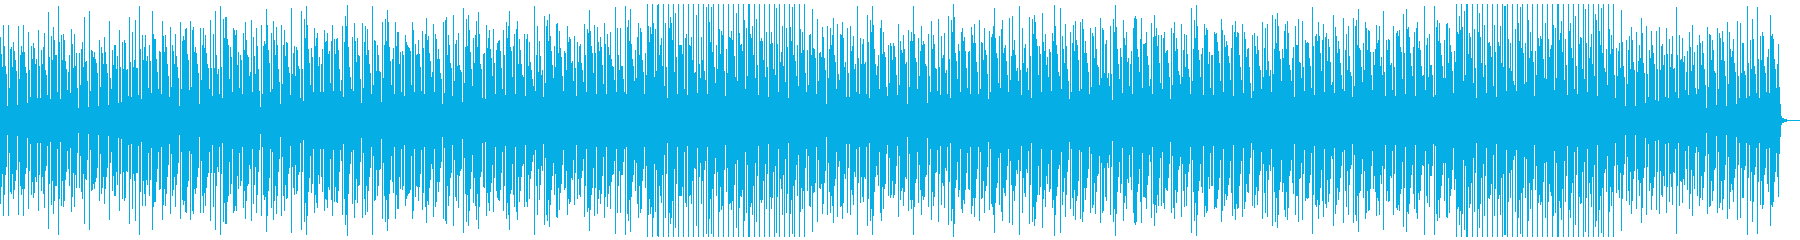 Refreshing and vigorous acoustic for corporate VP's reproduced waveform